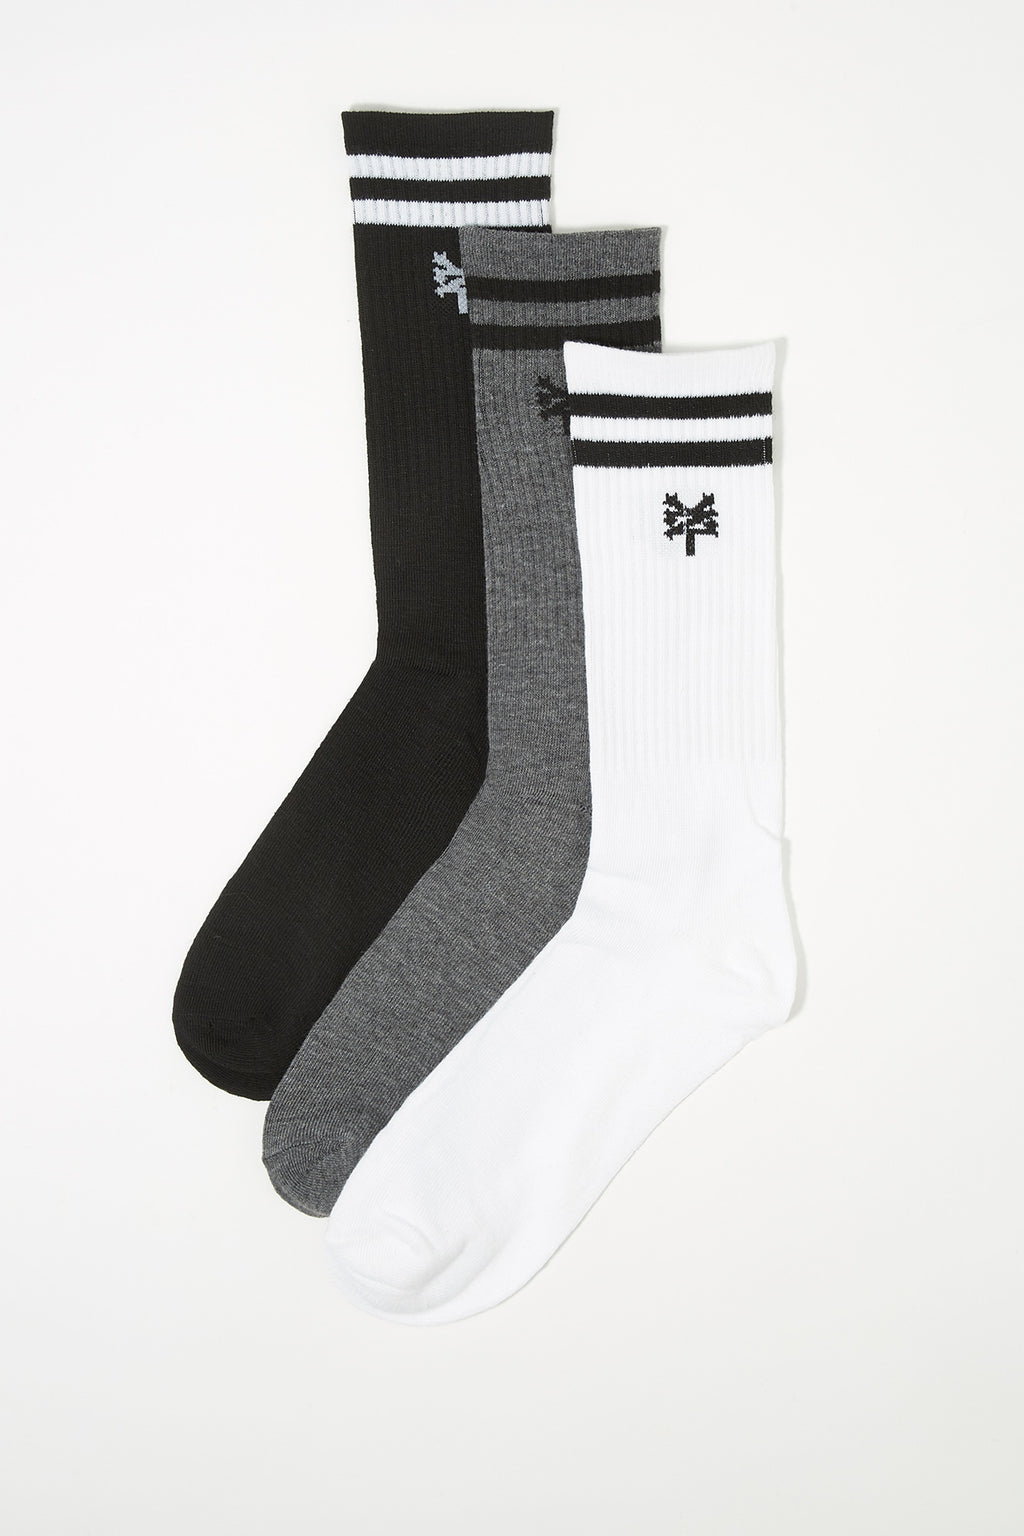 Zoo York Mens 3-Pack Crew Socks